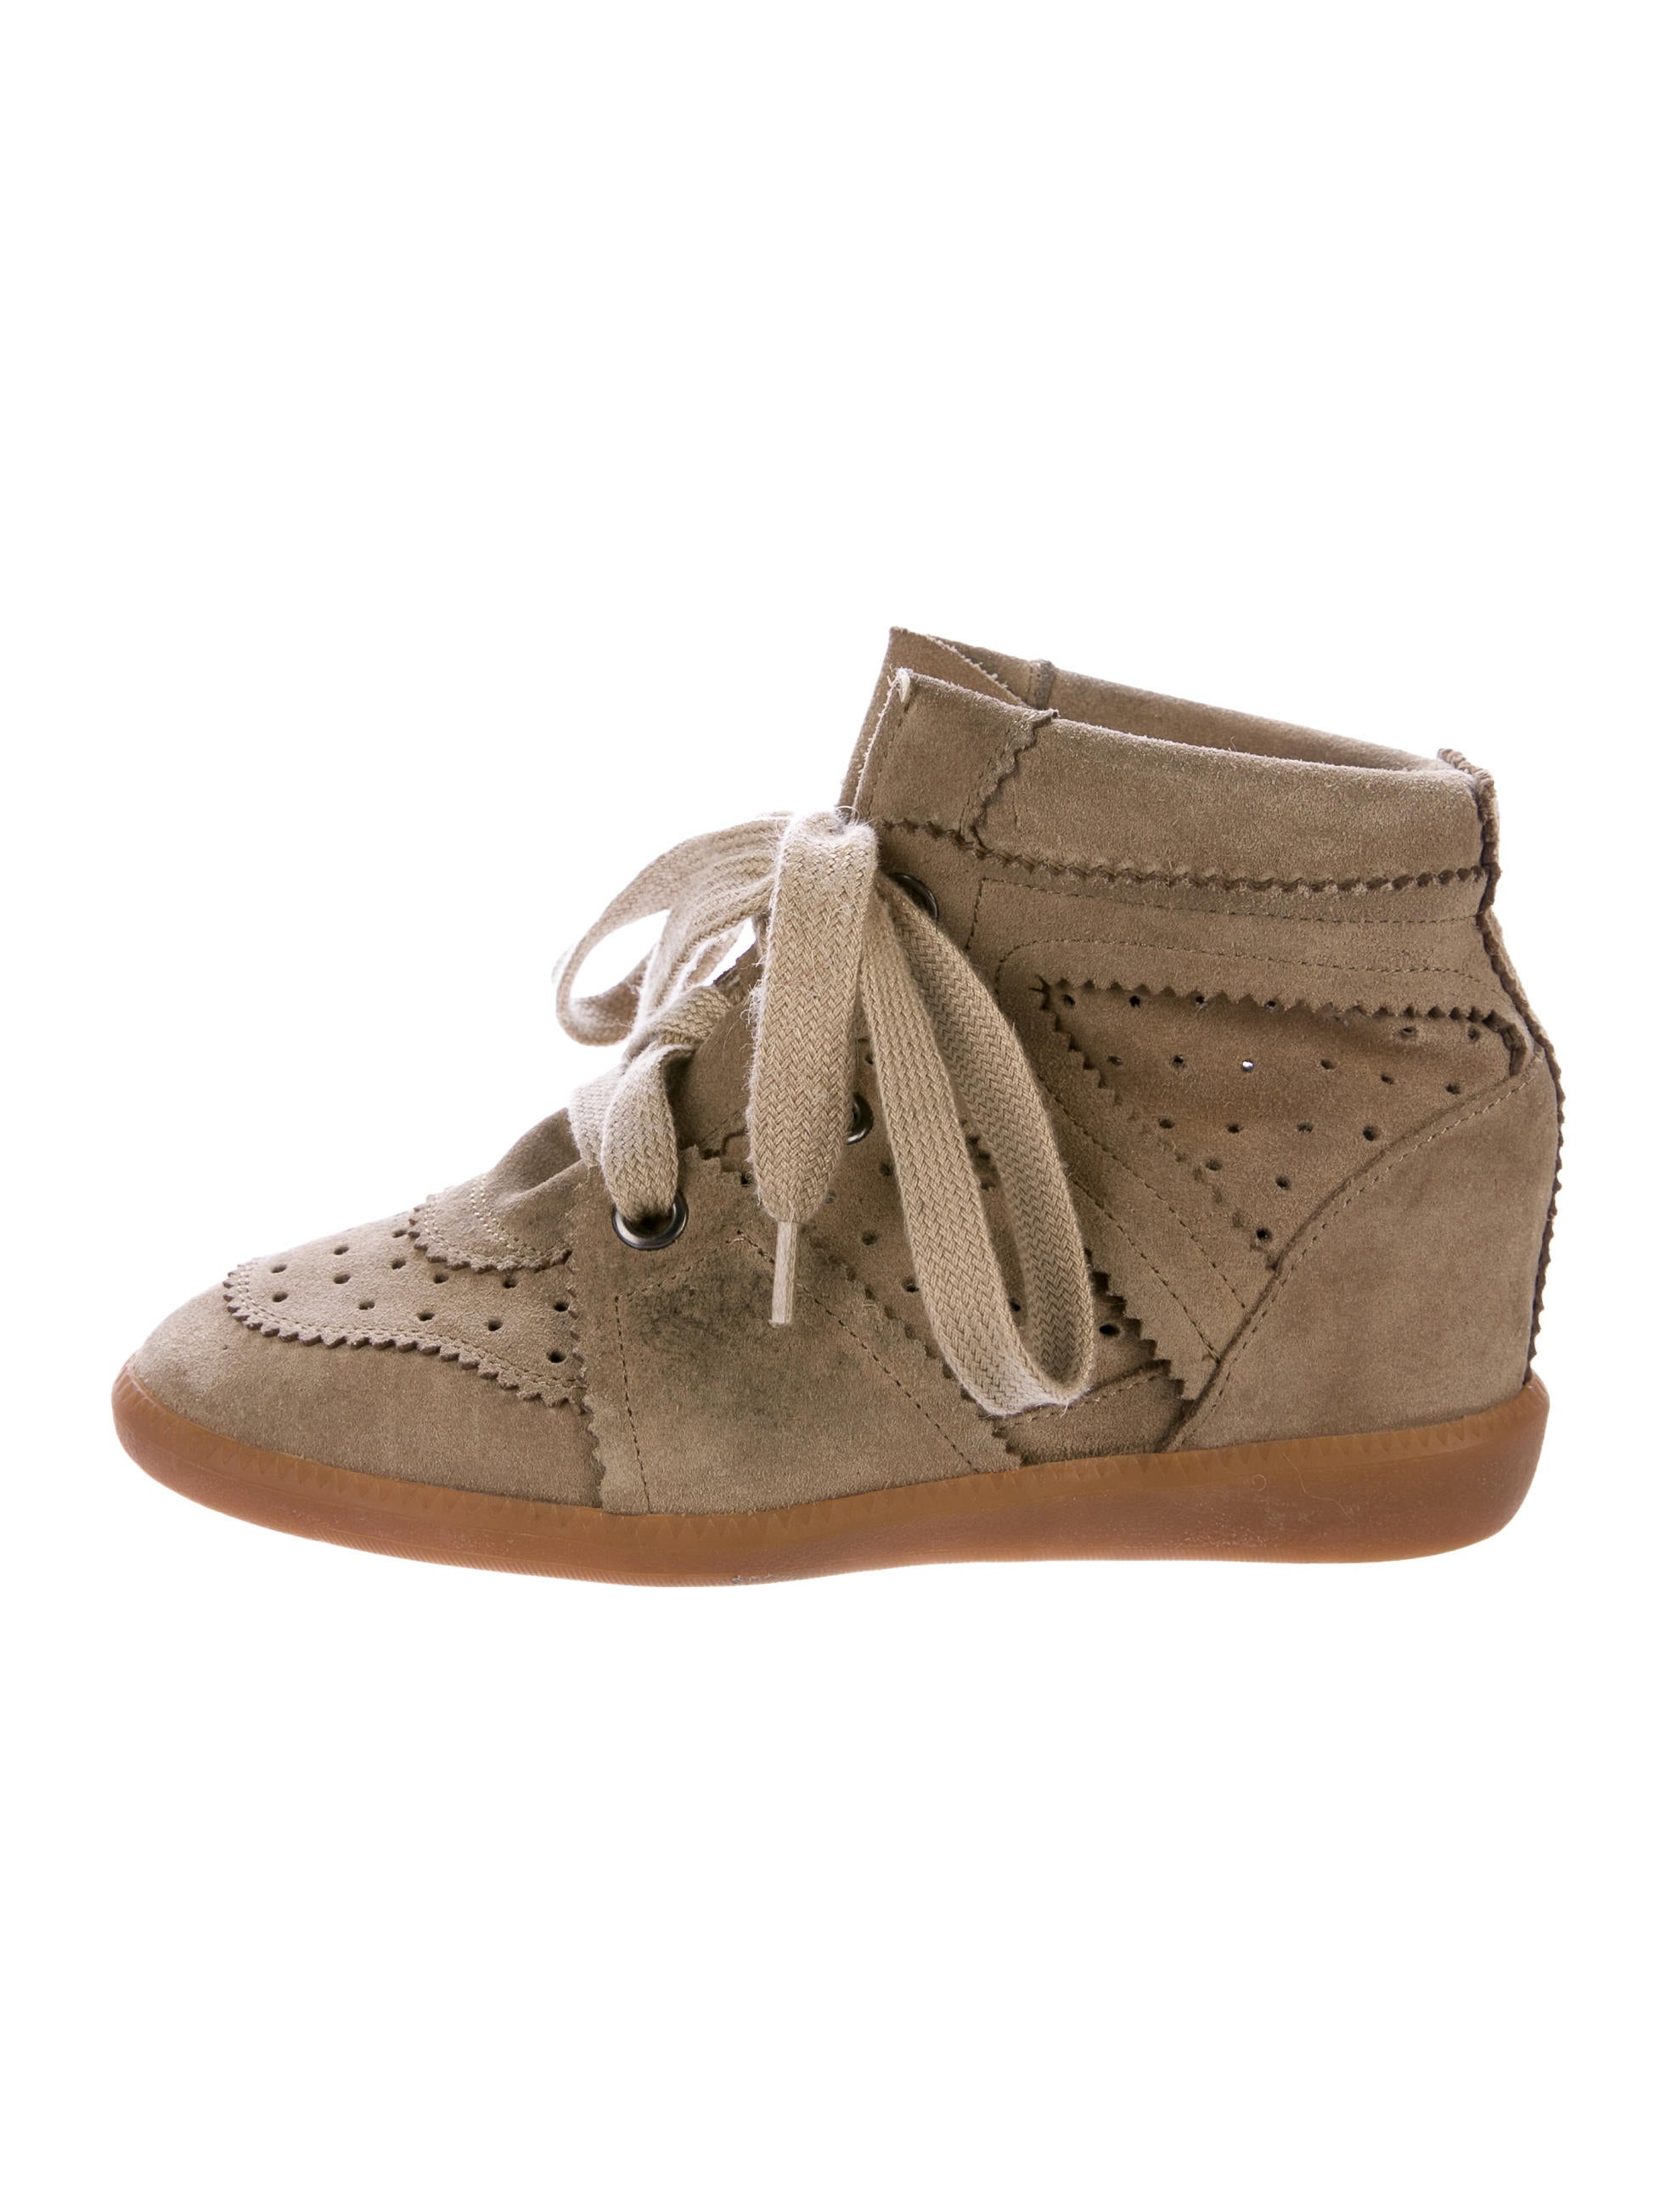 isabel marant bobby wedge sneakers shoes isa45274 the realreal. Black Bedroom Furniture Sets. Home Design Ideas